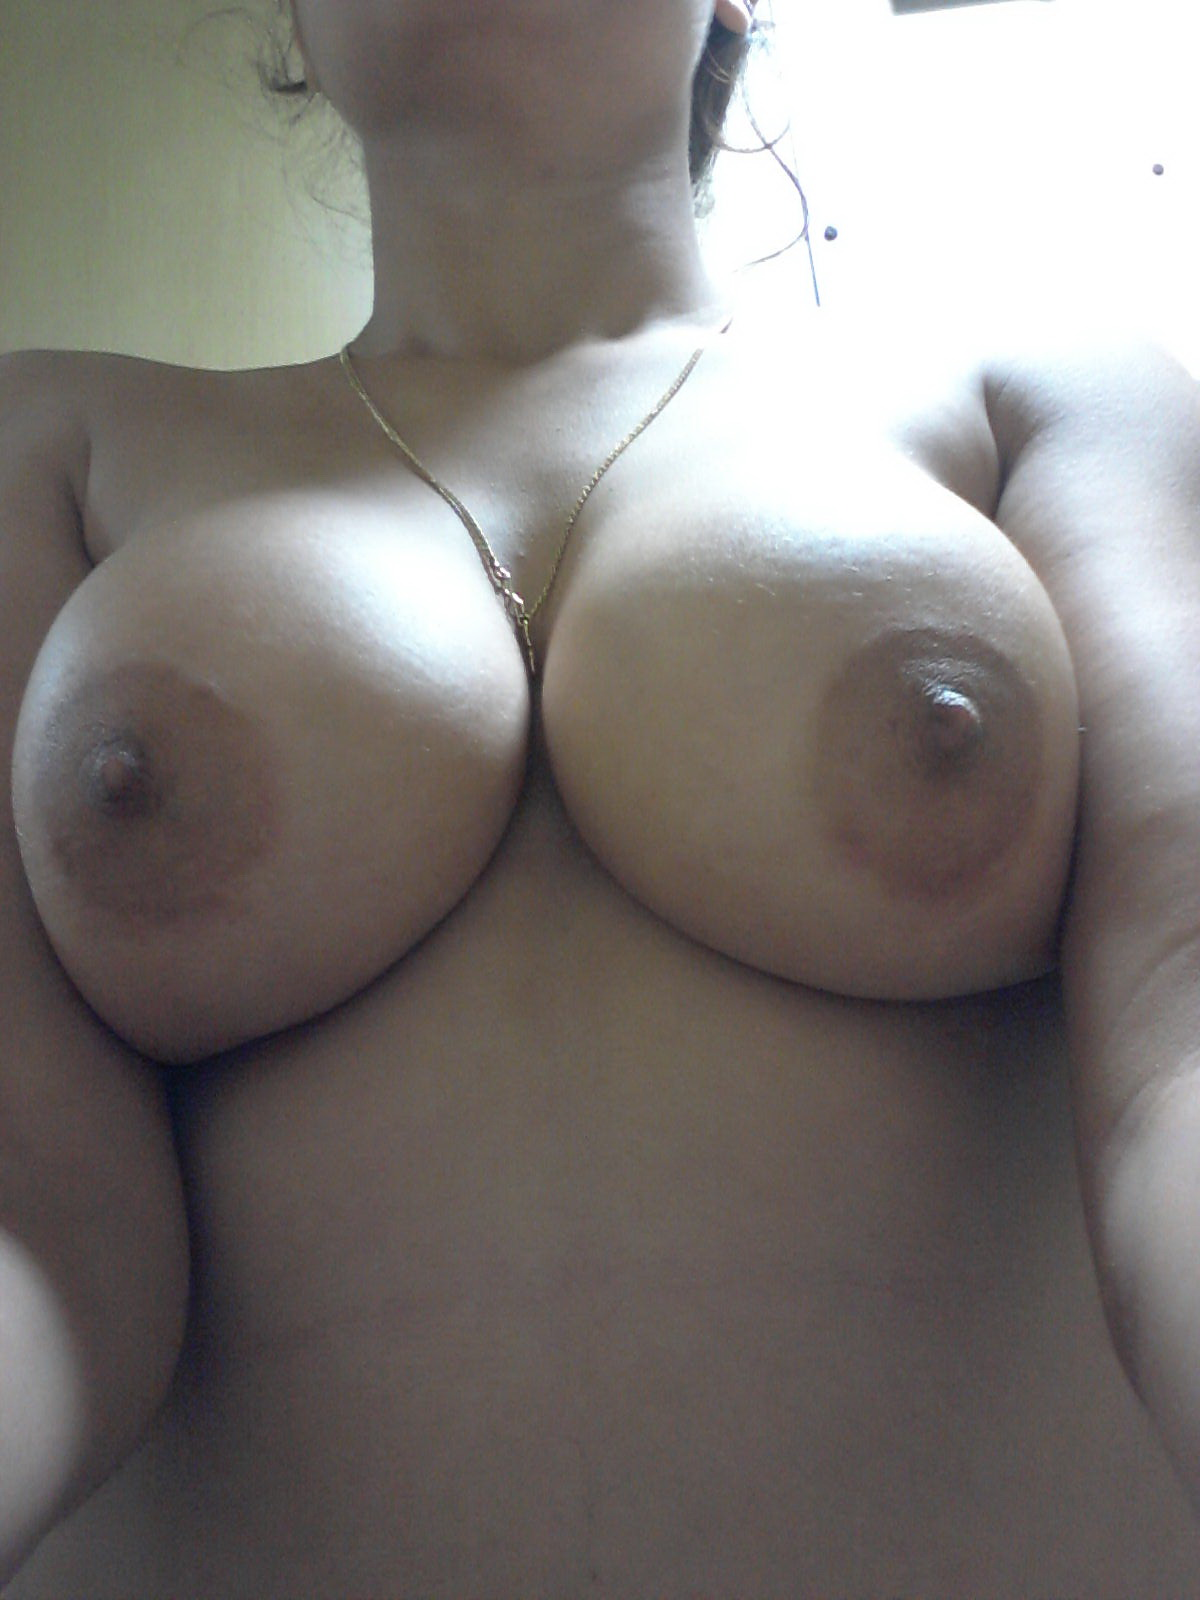 Beautiful Big Boobs On Sexy Indian Girl From Delhi - Real Indian Gfs-2167